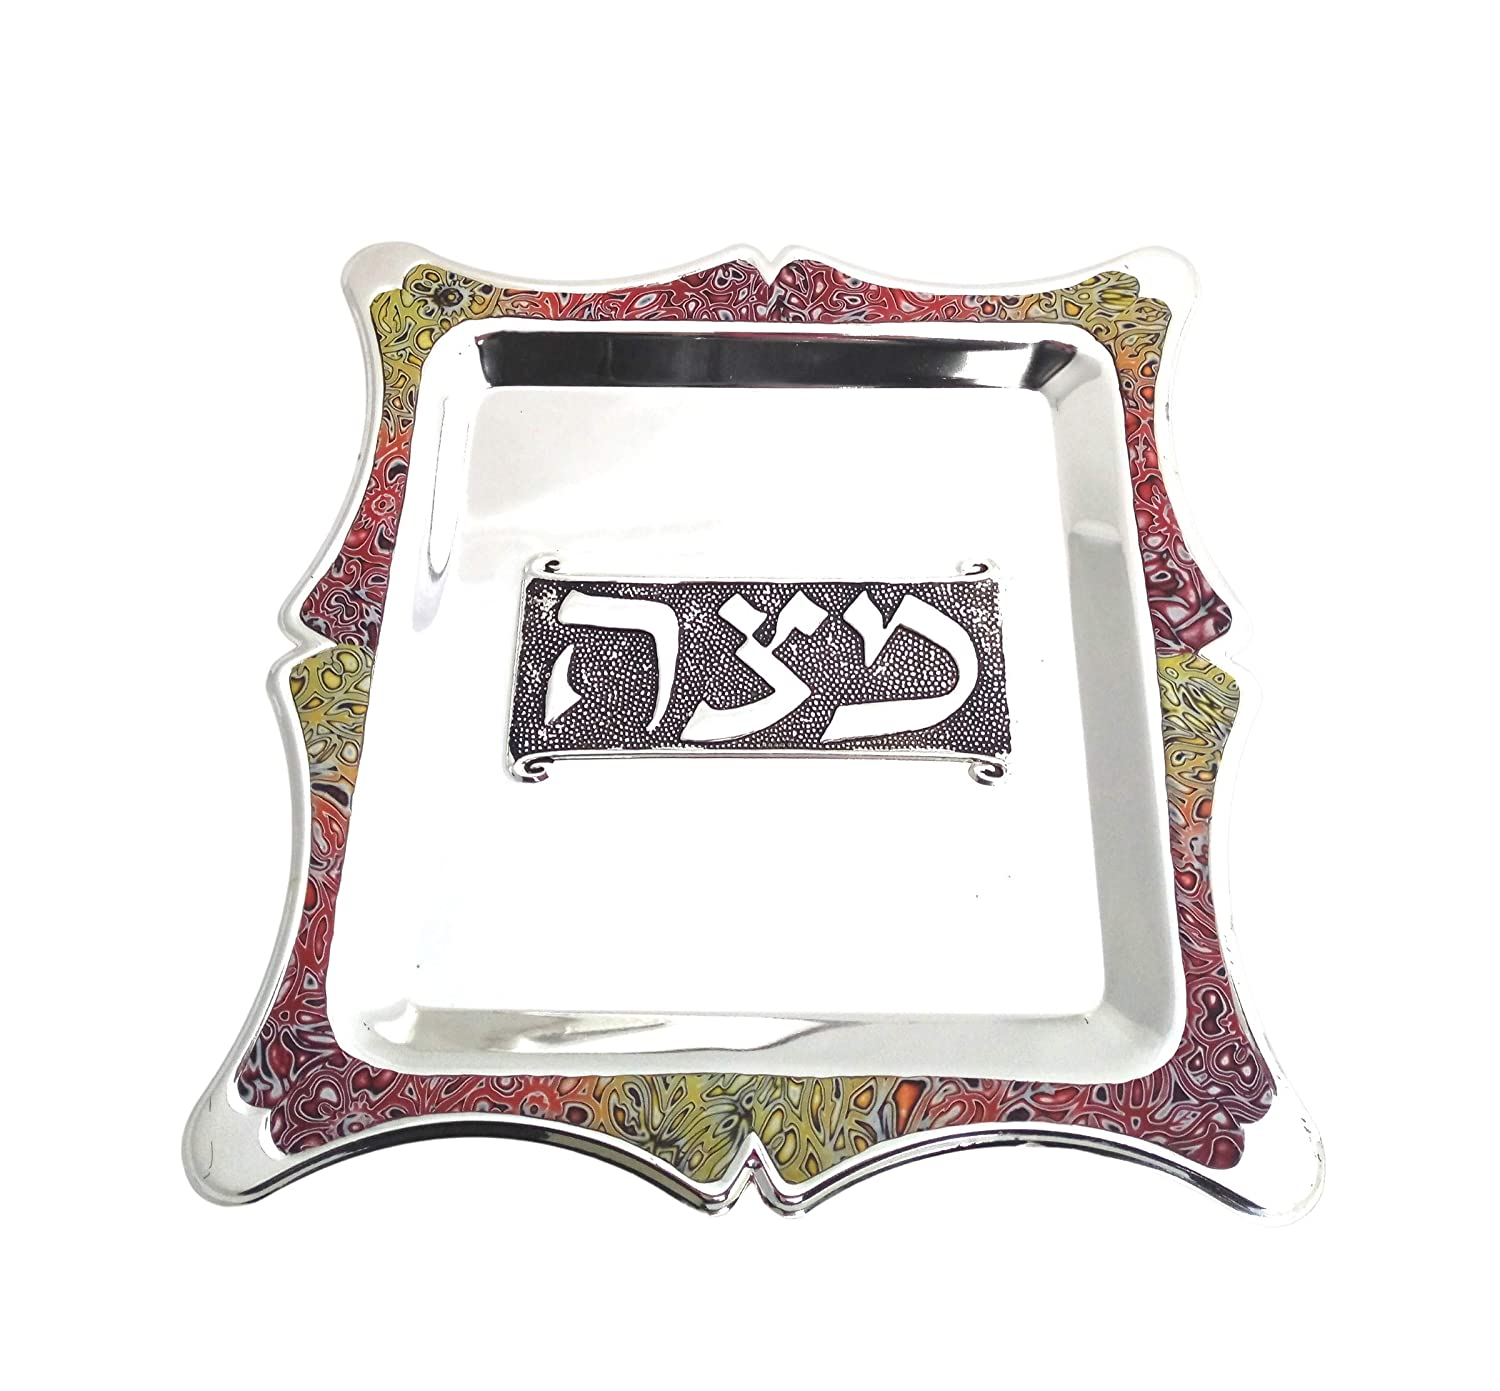 Passover Matzah Plate Max 75% OFF Seder Boston Mall and Serving Pesach J Dish Handmade